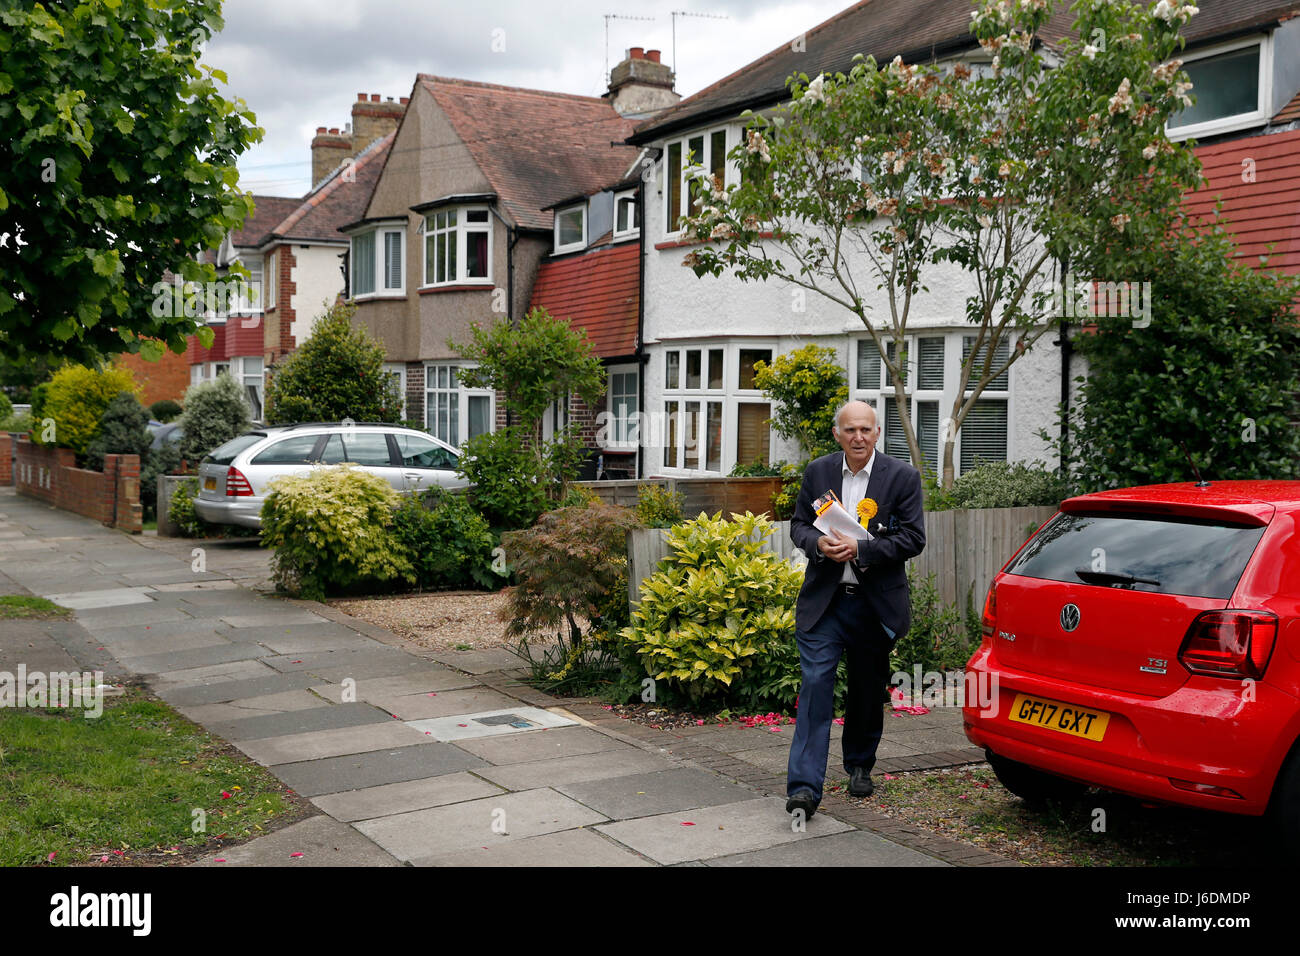 Liberal Democrat candidate Vince Cable out campaigning in Twickenham ahead of Britain's upcoming General Election Stock Photo